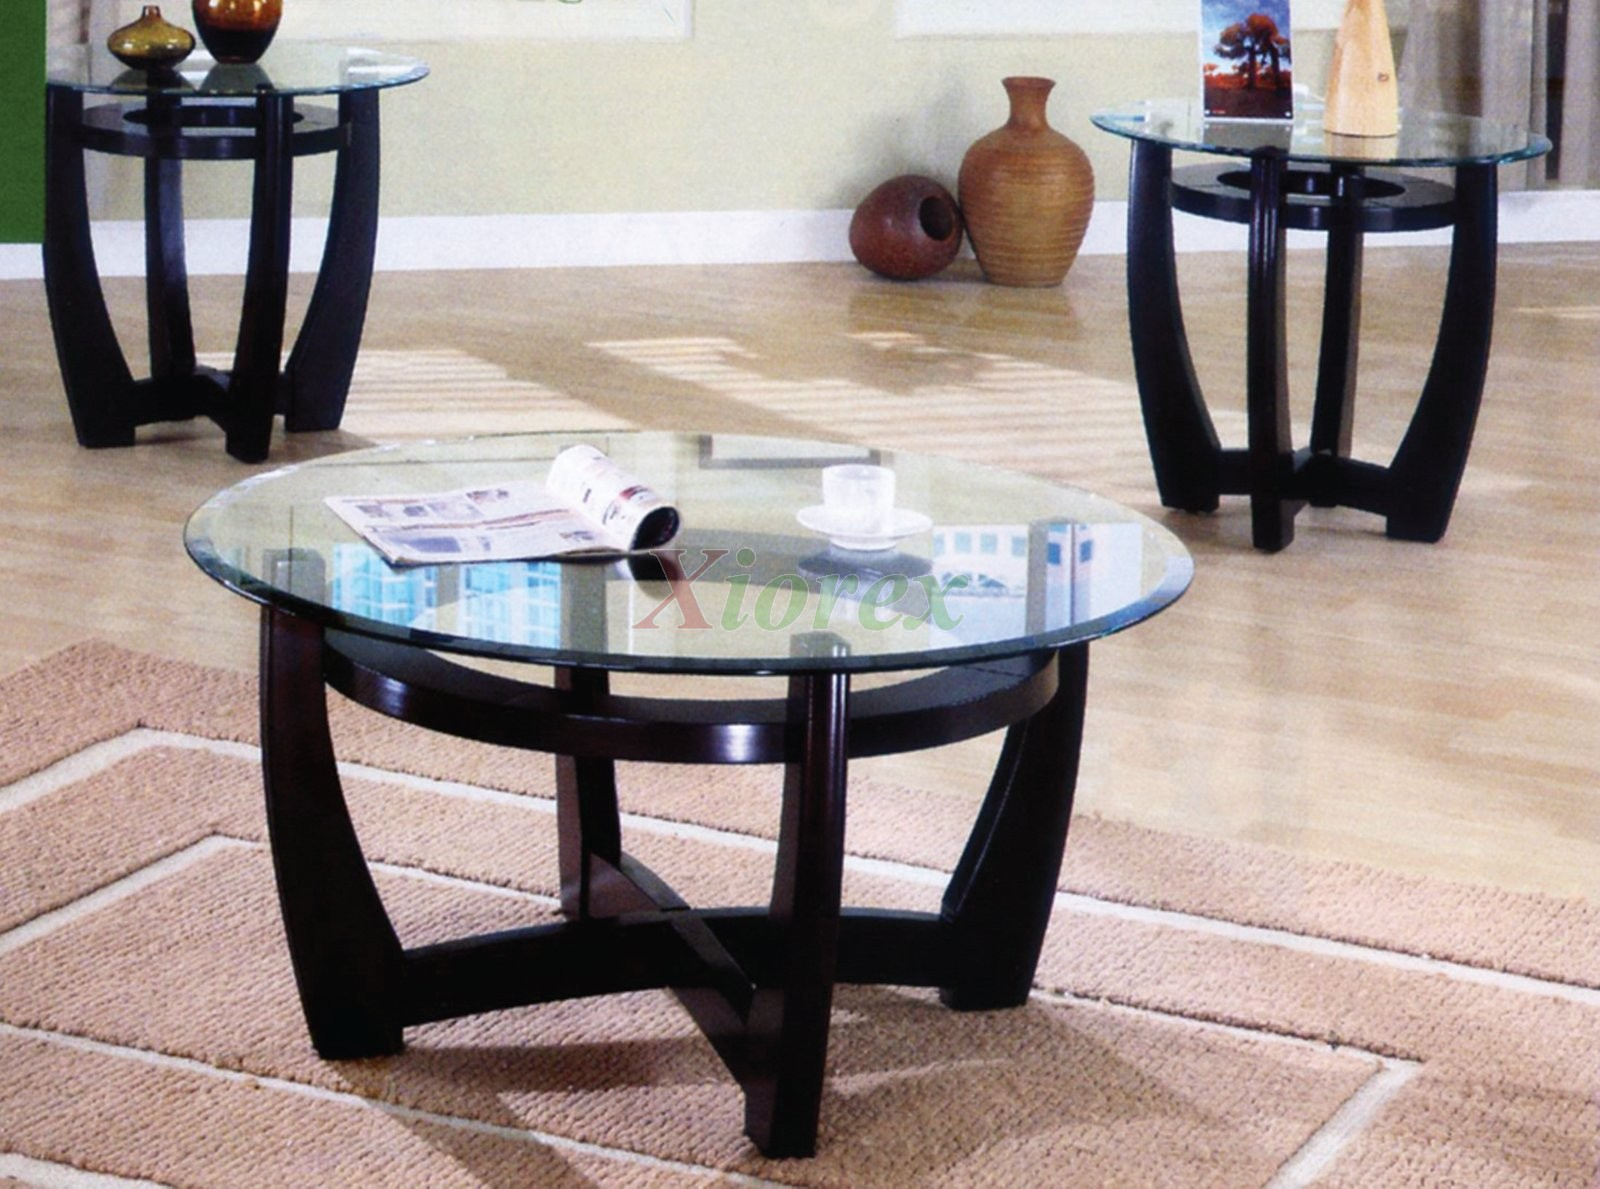 Ursa 3 Piece Living Room Table Set Xiorex for Table Sets Living Room